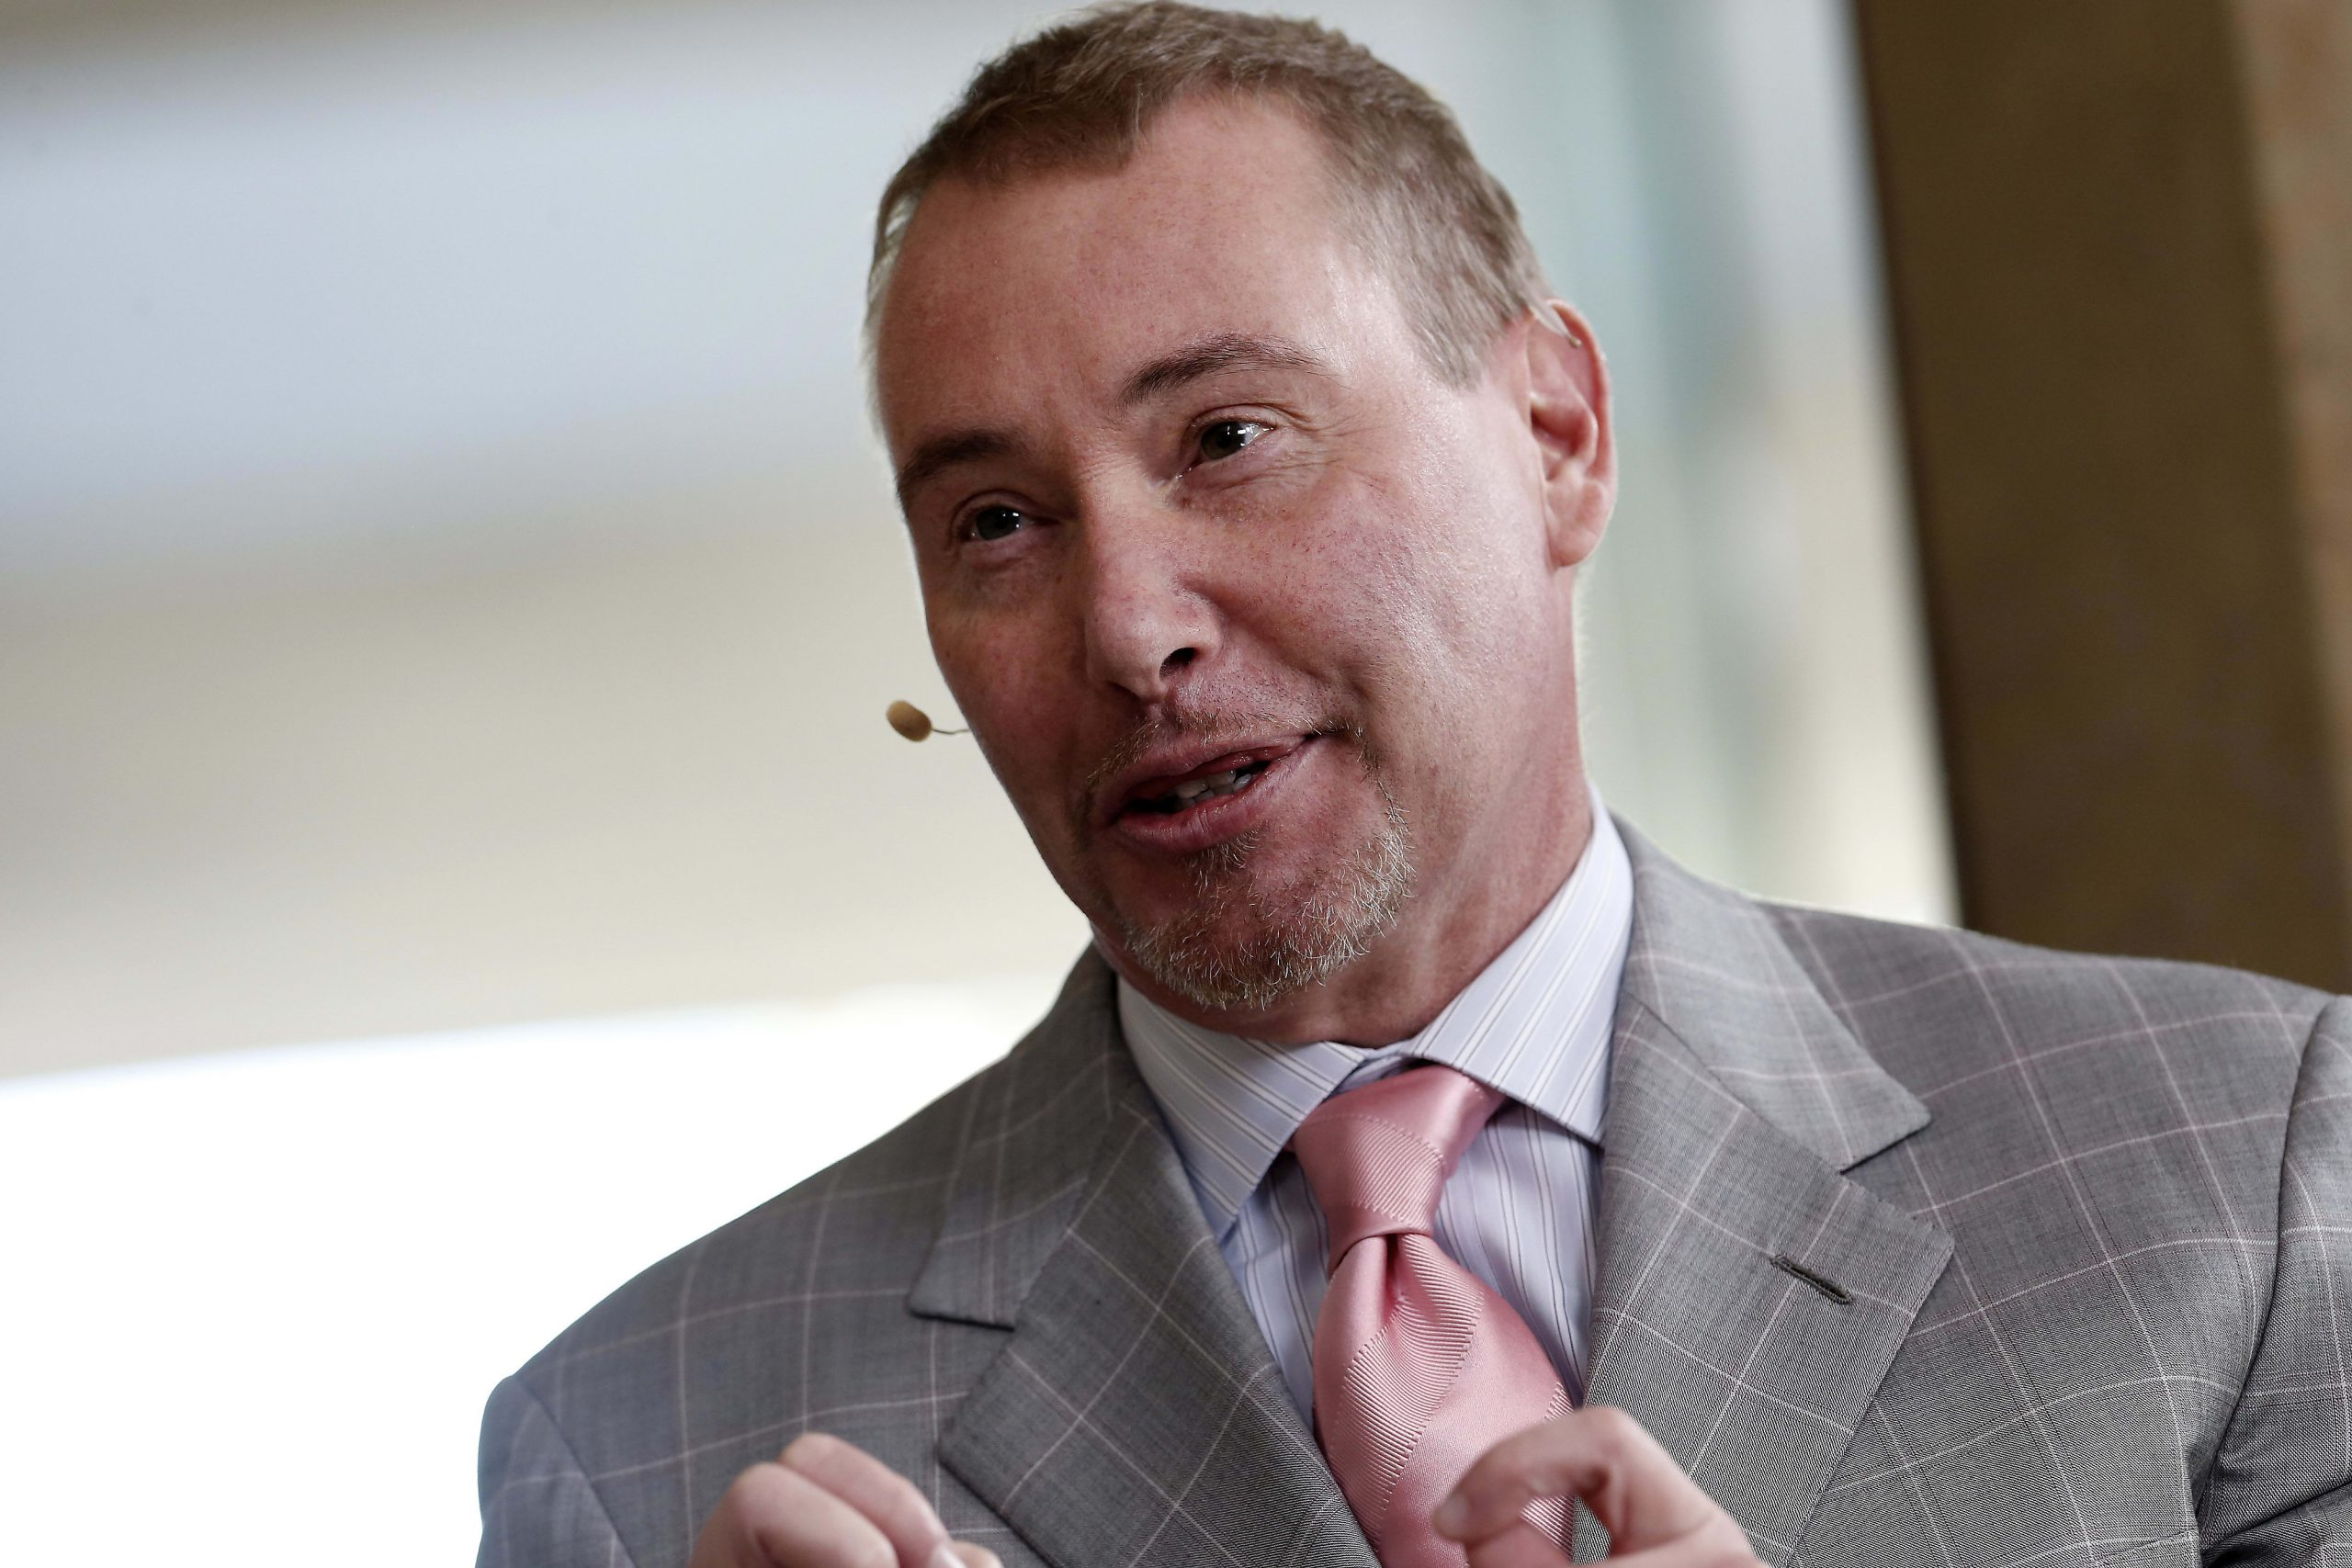 Bond King Gundlach says 'things have to get worse' in the market